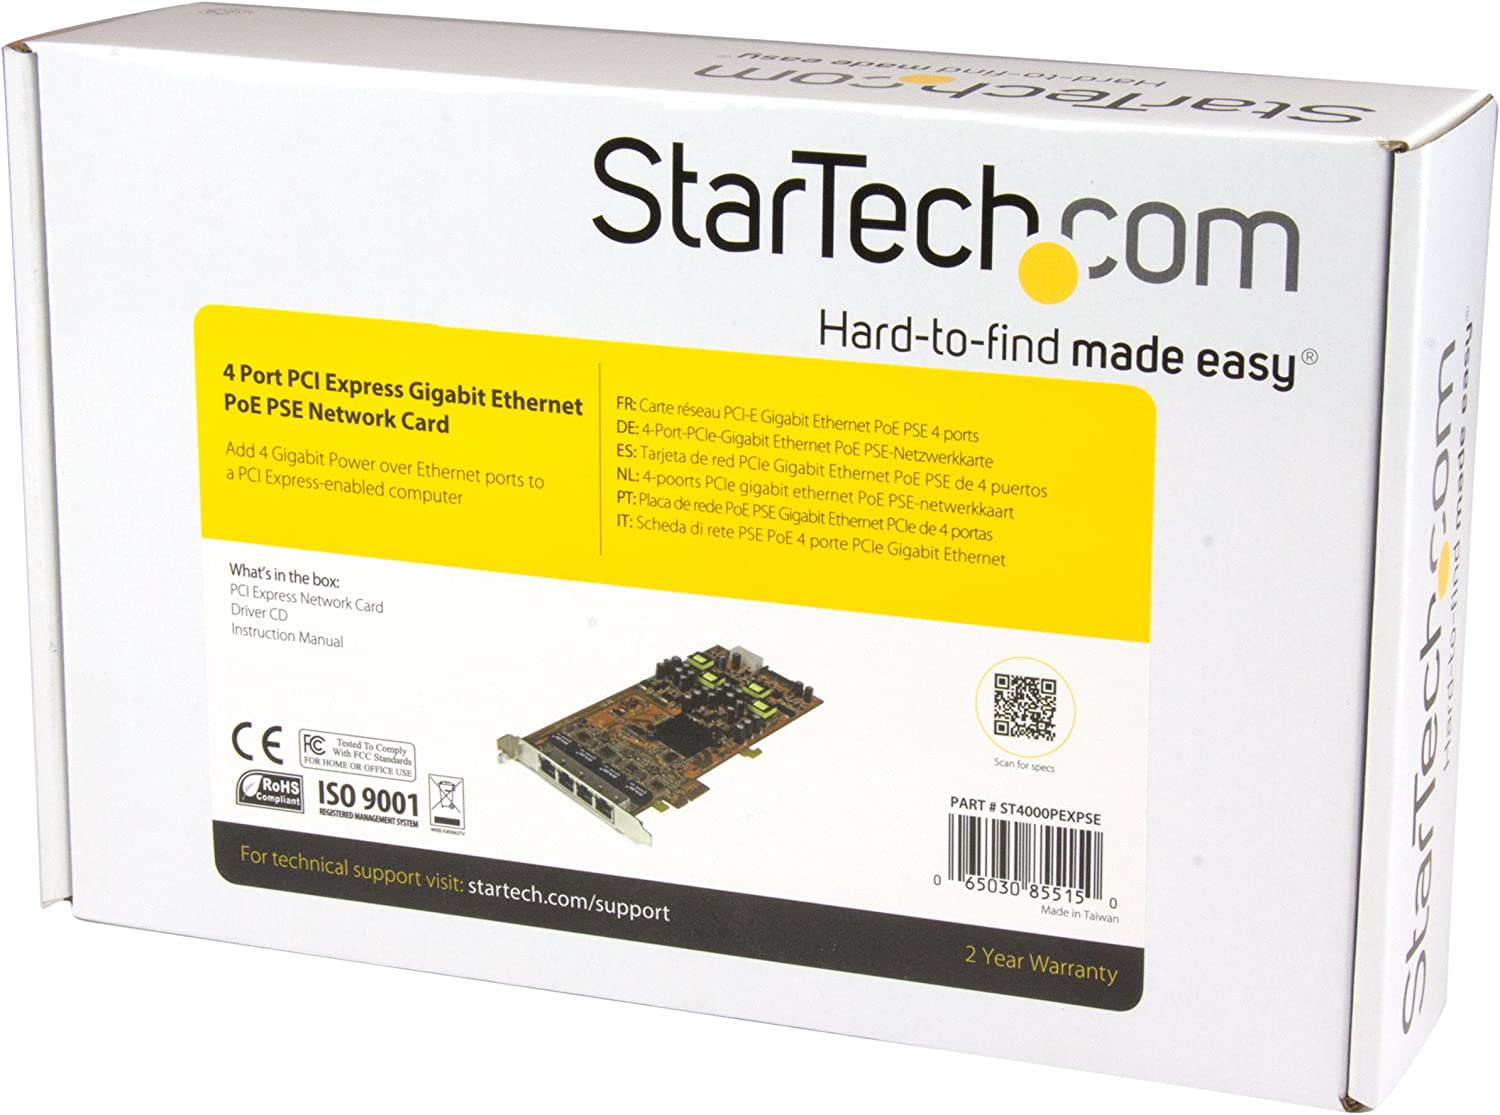 StarTech.com 4 Port Gigabit PoE (Power over Ethernet) Card - PCIe Network Card – PoE / PoE+ Up to 25W Per Port - PCIe NIC – Gigabit Ethernet Card ...